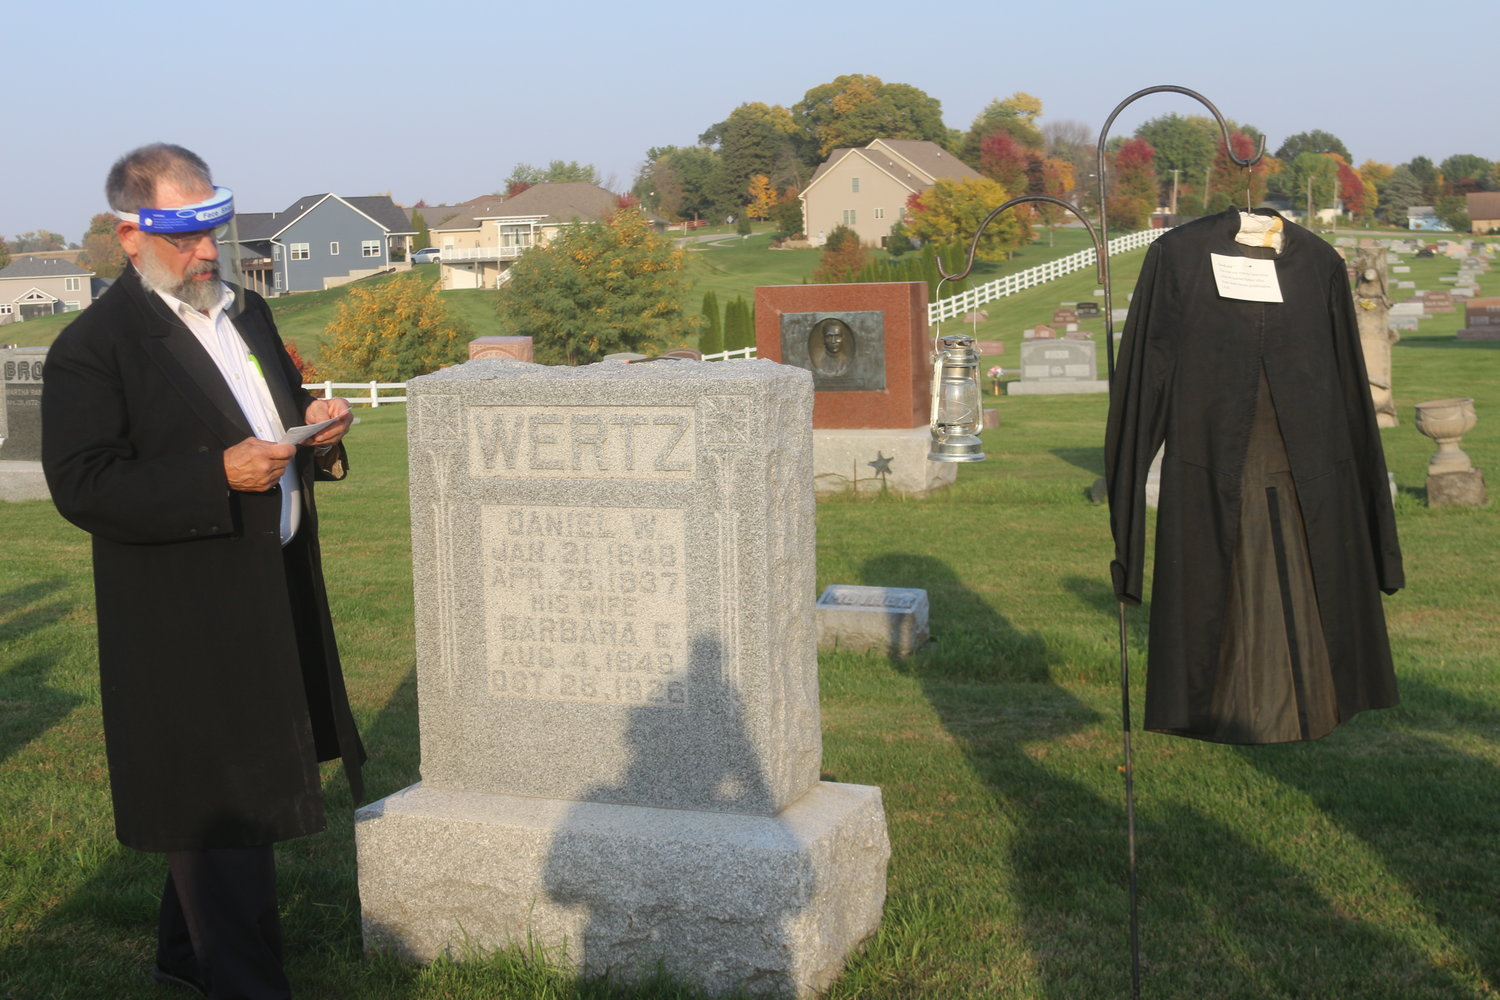 Calvin Yoder portrays one of his ancestors, Daniel Wertz, during the cemetery walk on Oct. 10. Hanging next to the gravestone is the coat Wertz wore during his wedding in 1871.